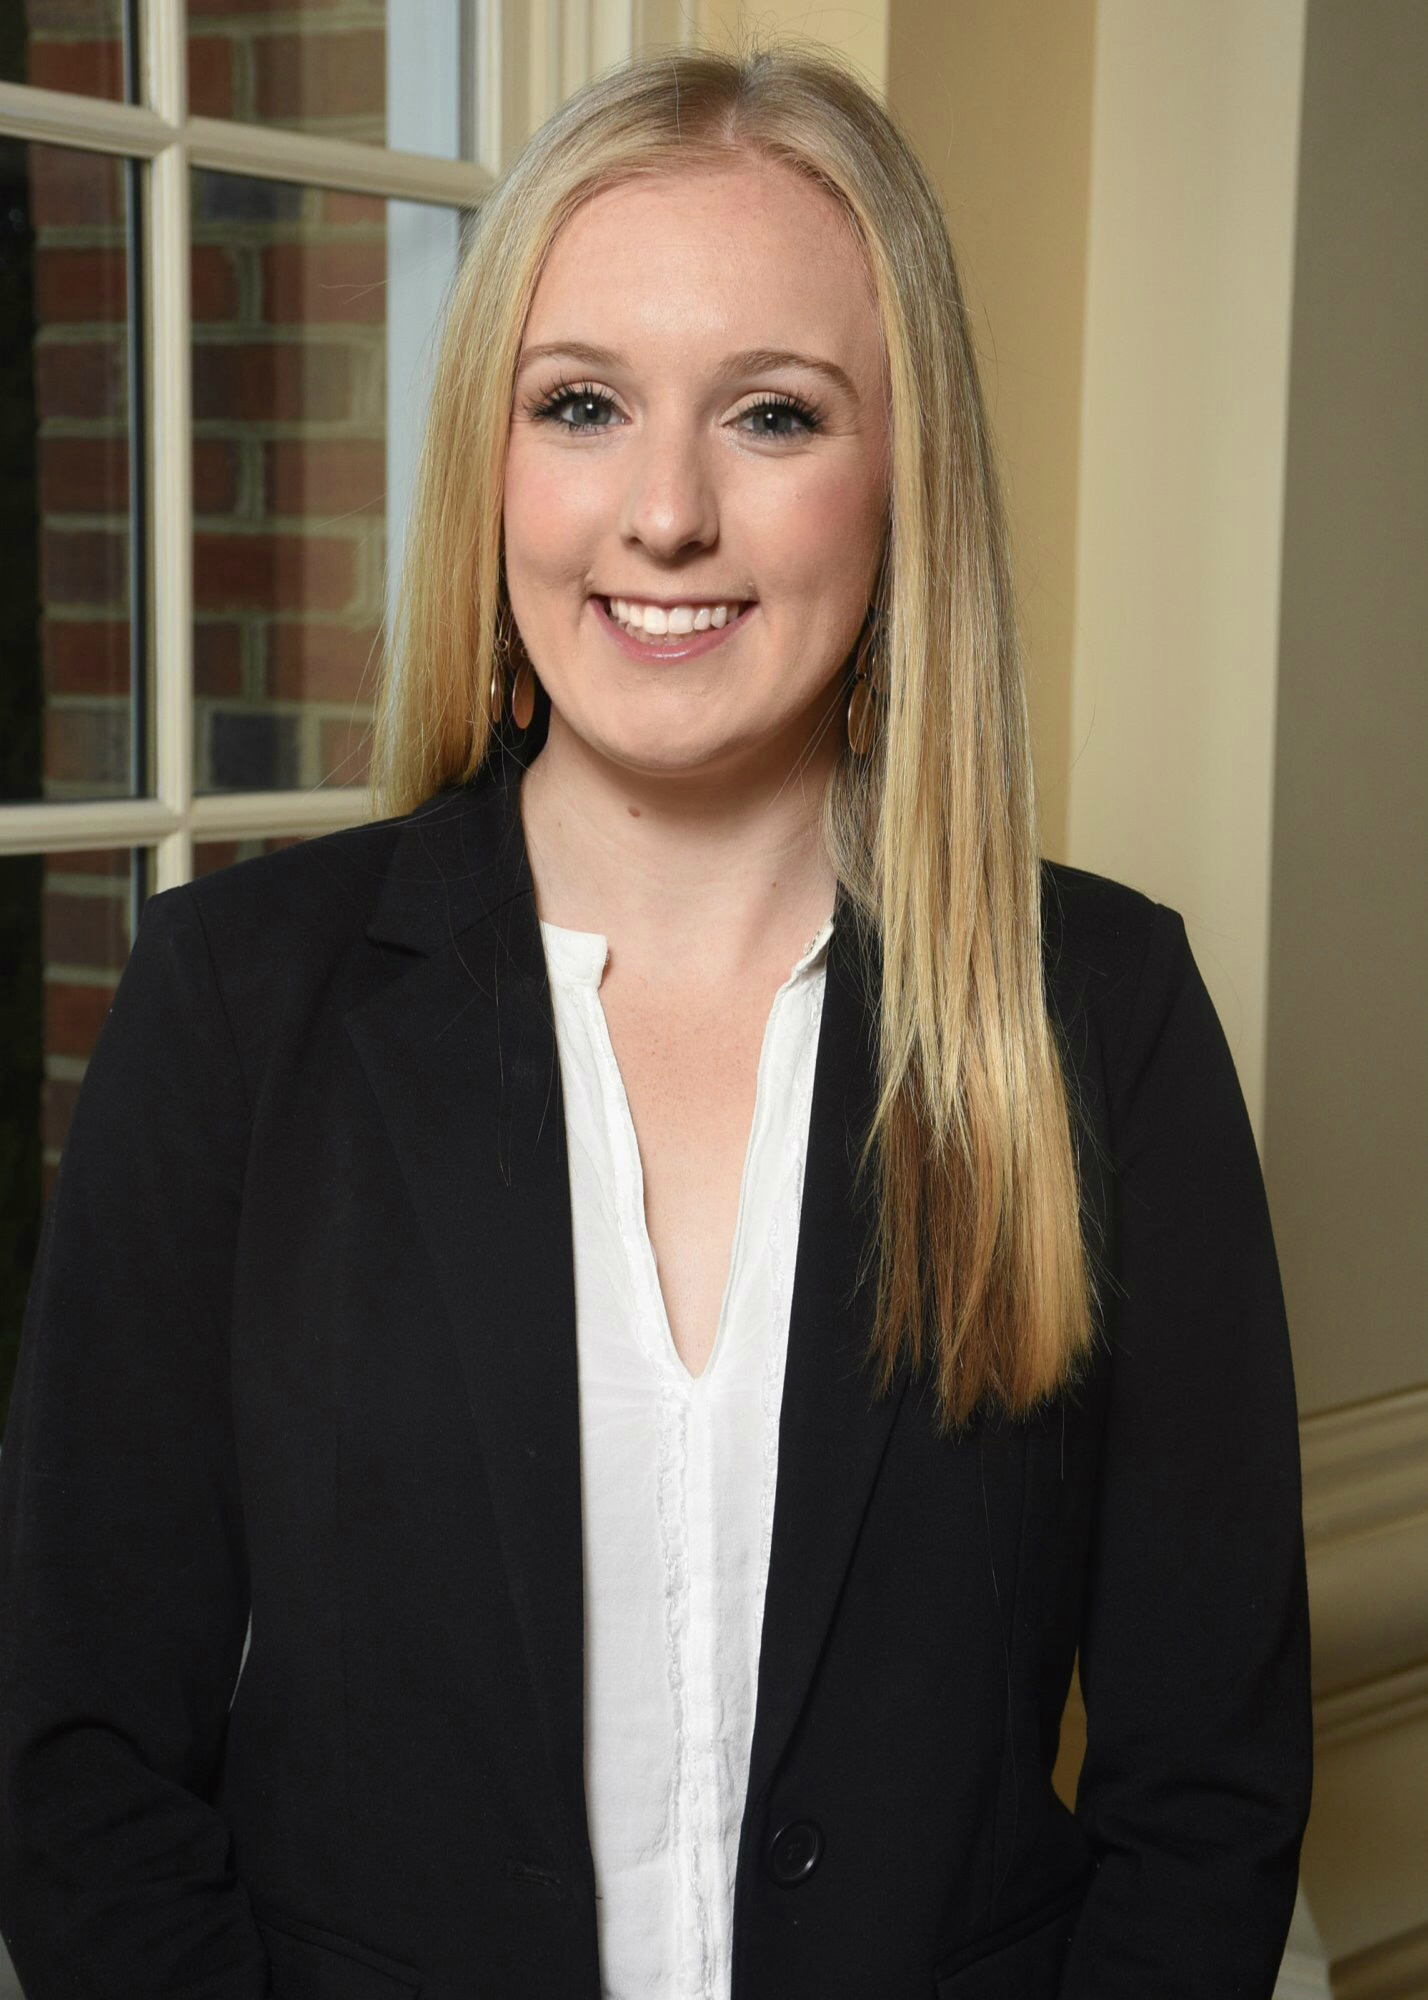 internship profile  emily segalla grows her business knowledge at gallagher